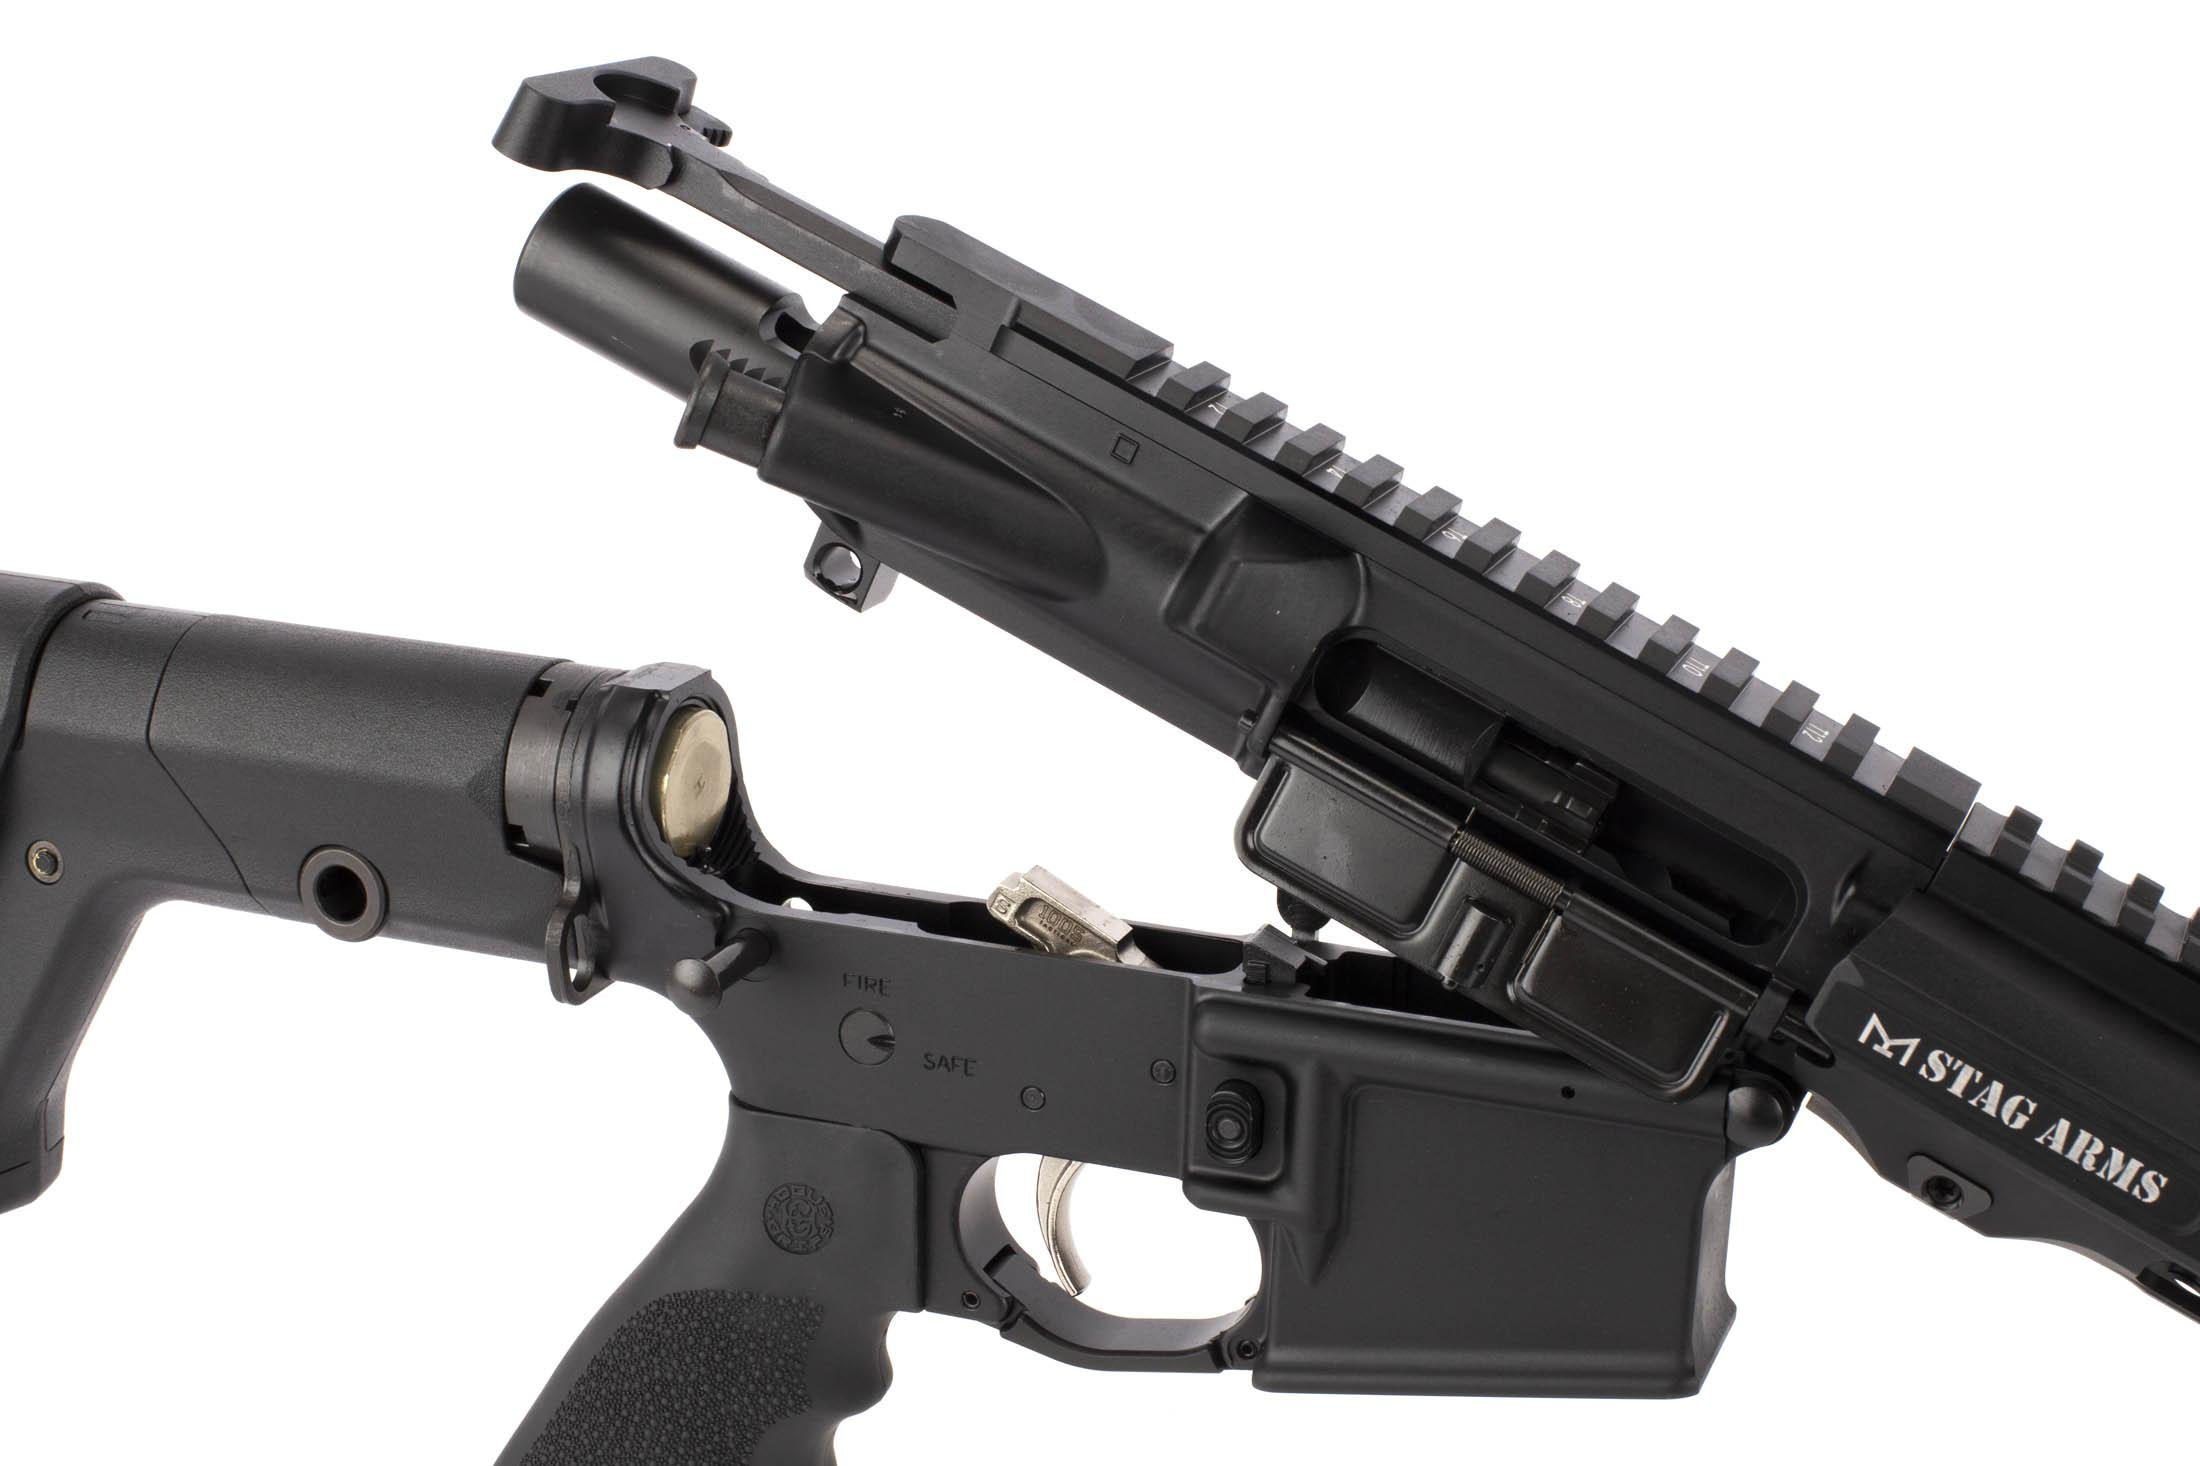 Stag Arms 18 inch .224 Valkyrie rifle uses a standard carbine buffer and M16 bolt carrier group